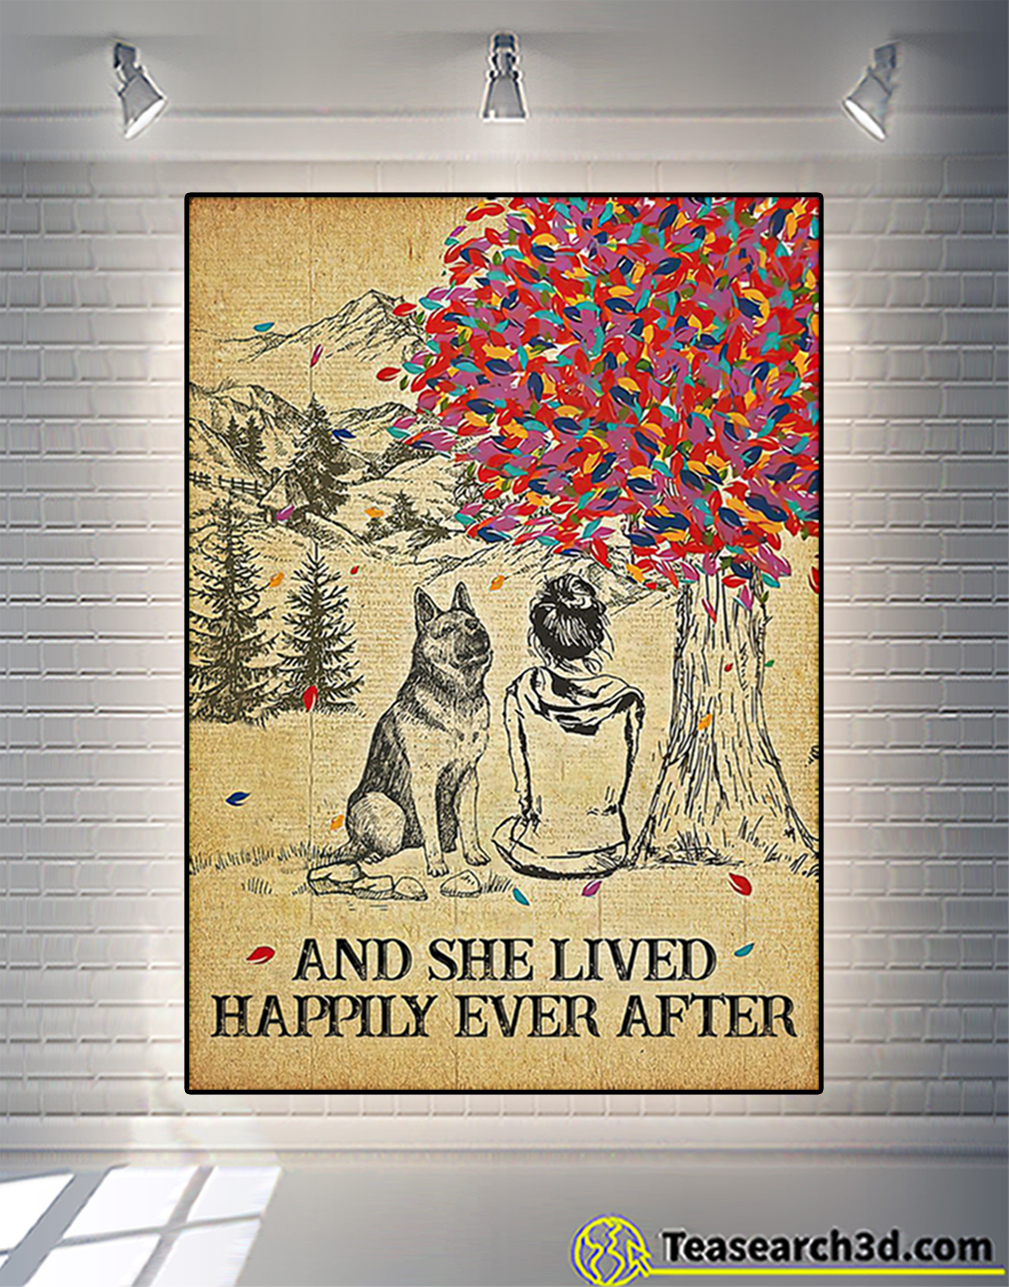 German shepherd and she lived happily ever after poster